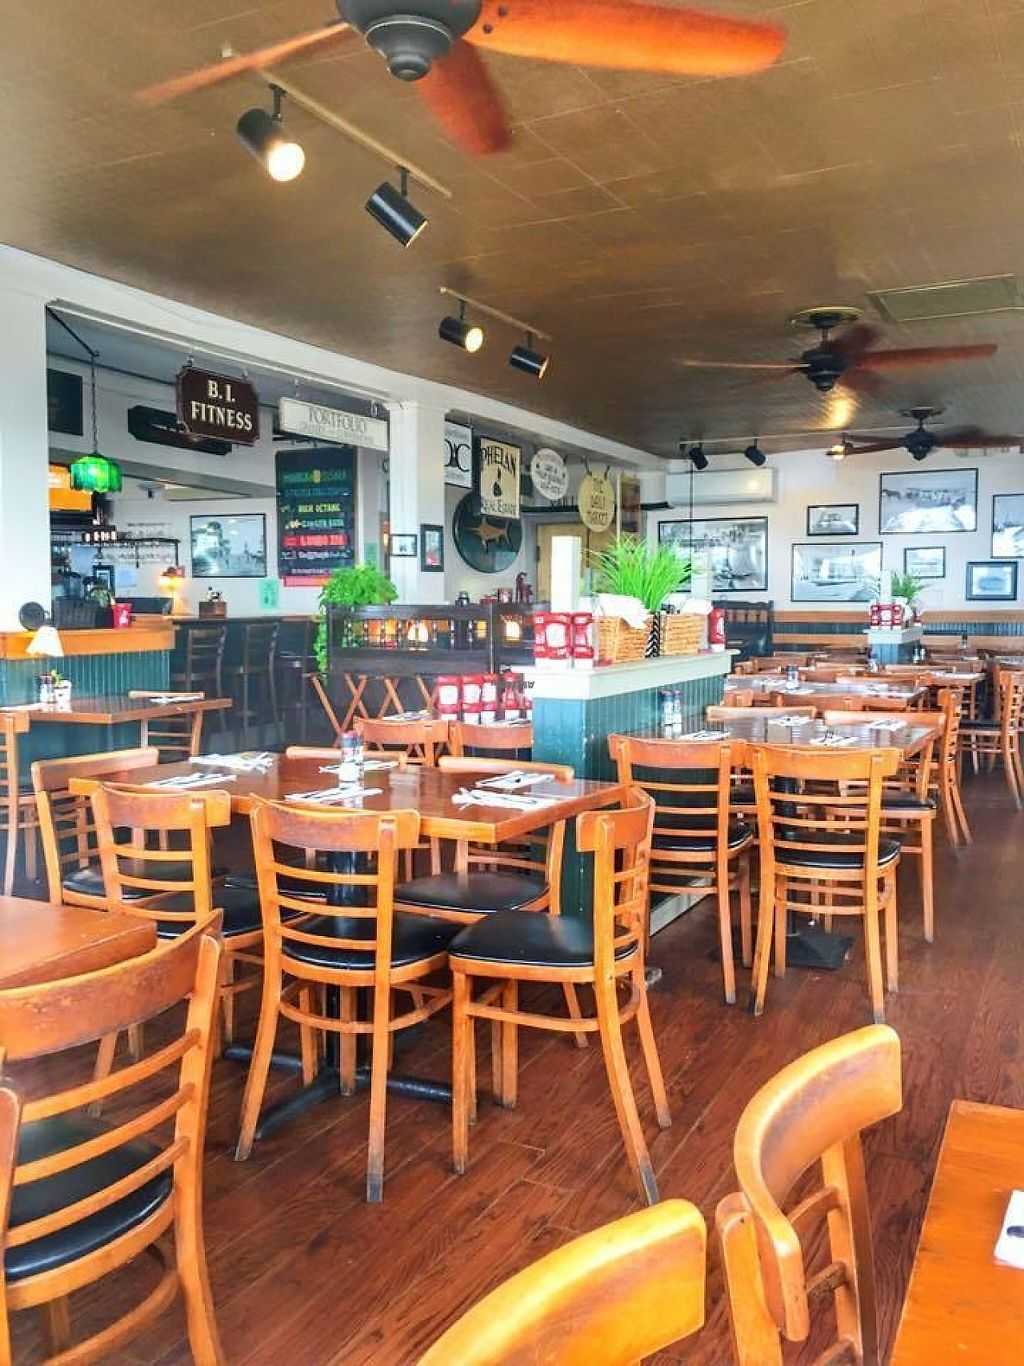 """Photo of Mohegan Cafe & Brewery  by <a href=""""/members/profile/community"""">community</a> <br/> inside Mohegan Cafe & Brewery <br/> March 5, 2017  - <a href='/contact/abuse/image/76969/232951'>Report</a>"""